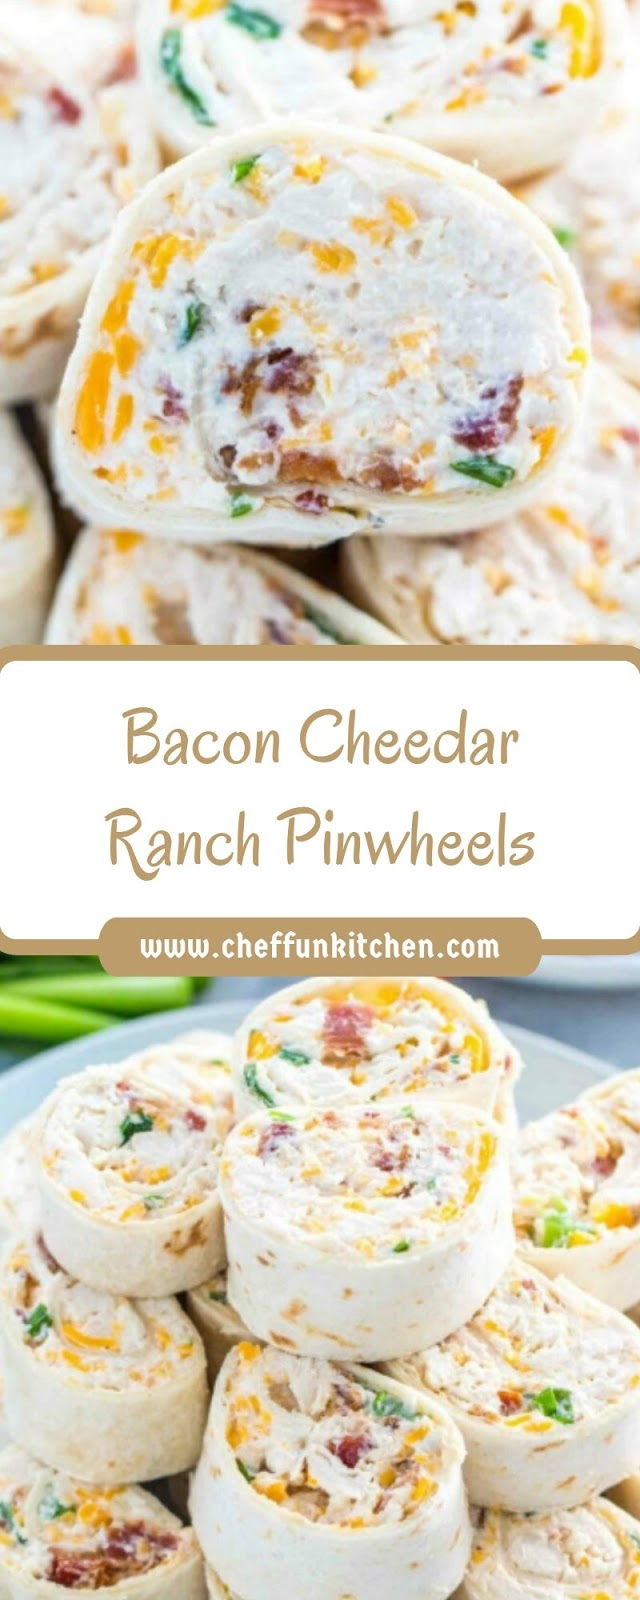 Bacon Cheedar Ranch Pinwheels